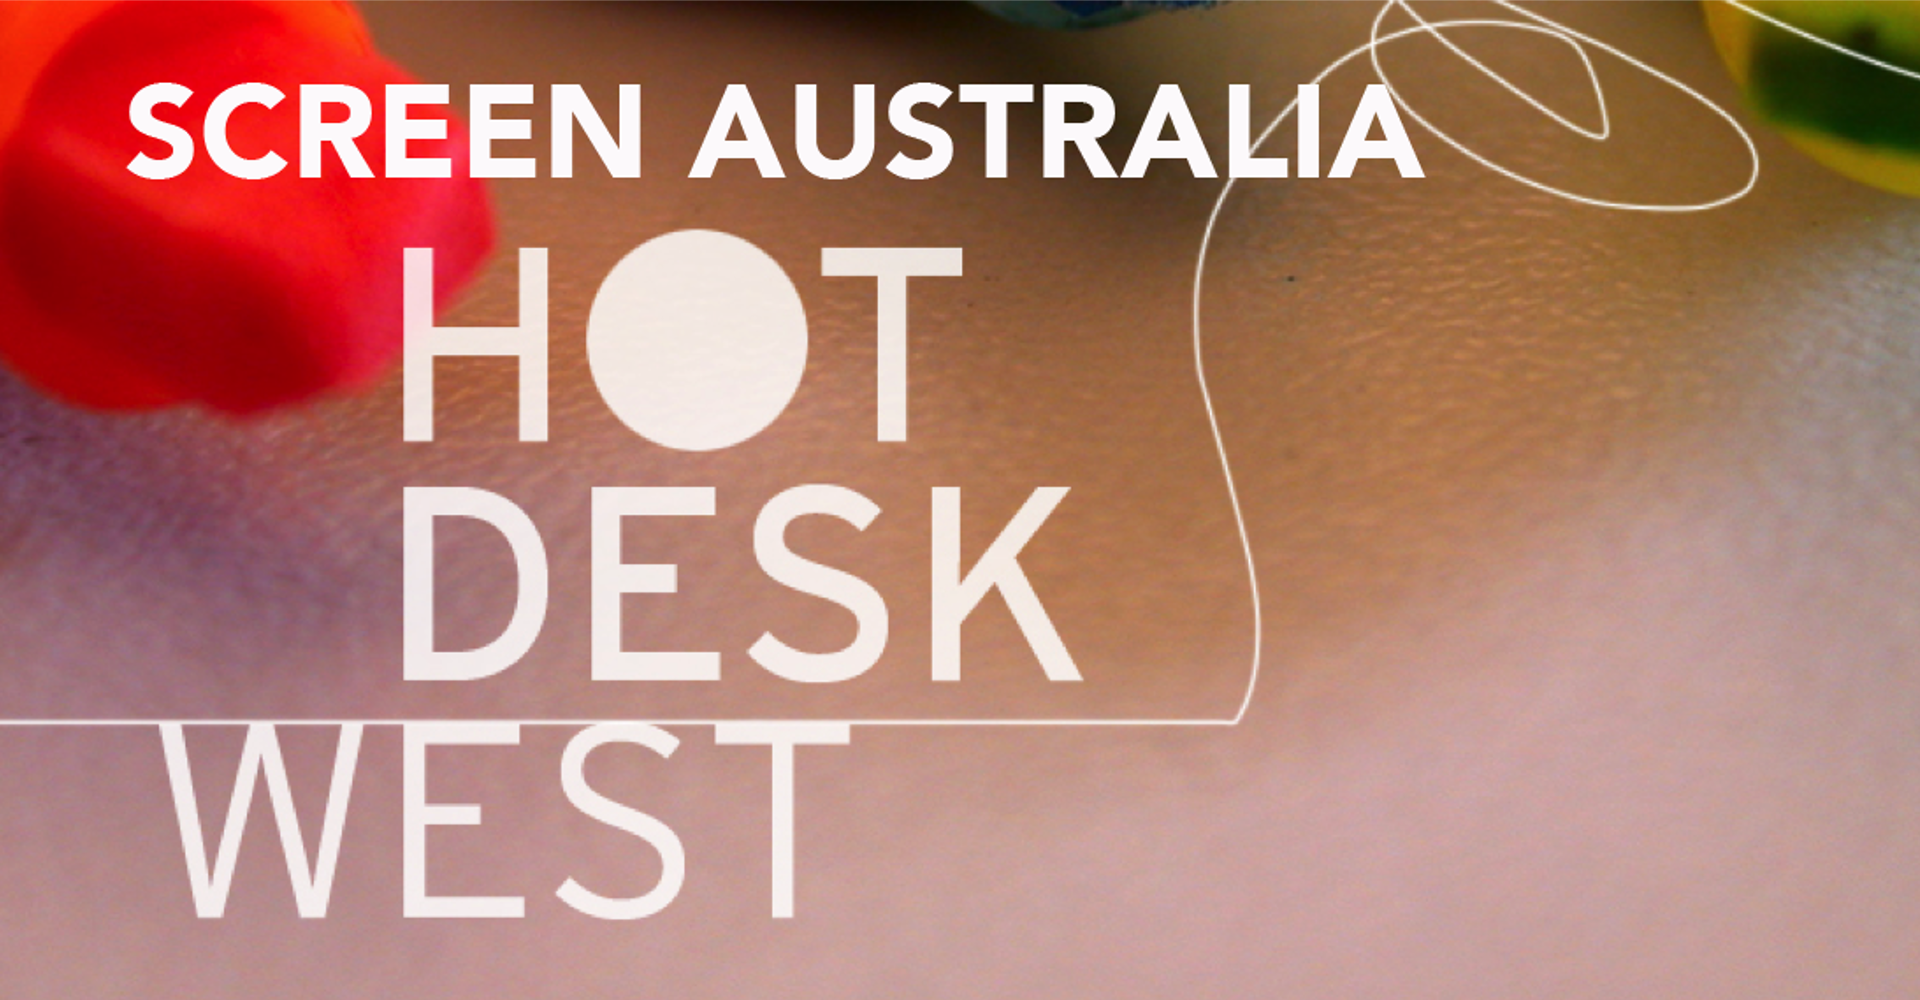 Screen Australia – Hot Desk West - Information & Cultural Exchange